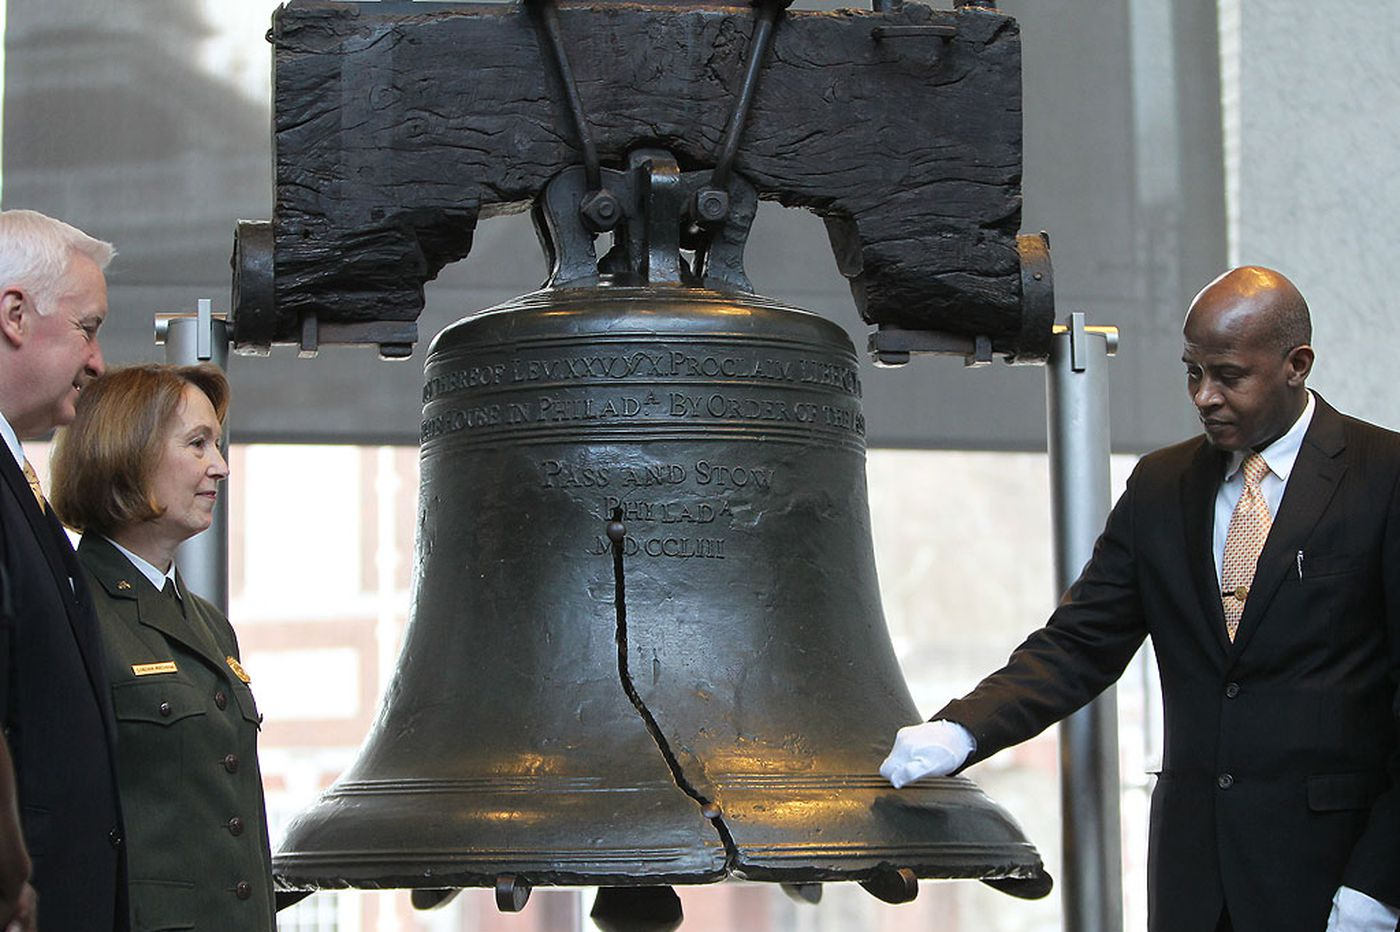 No MLK event at Philly's shuttered Liberty Bell due to shutdown; corporate rescue runs out of time